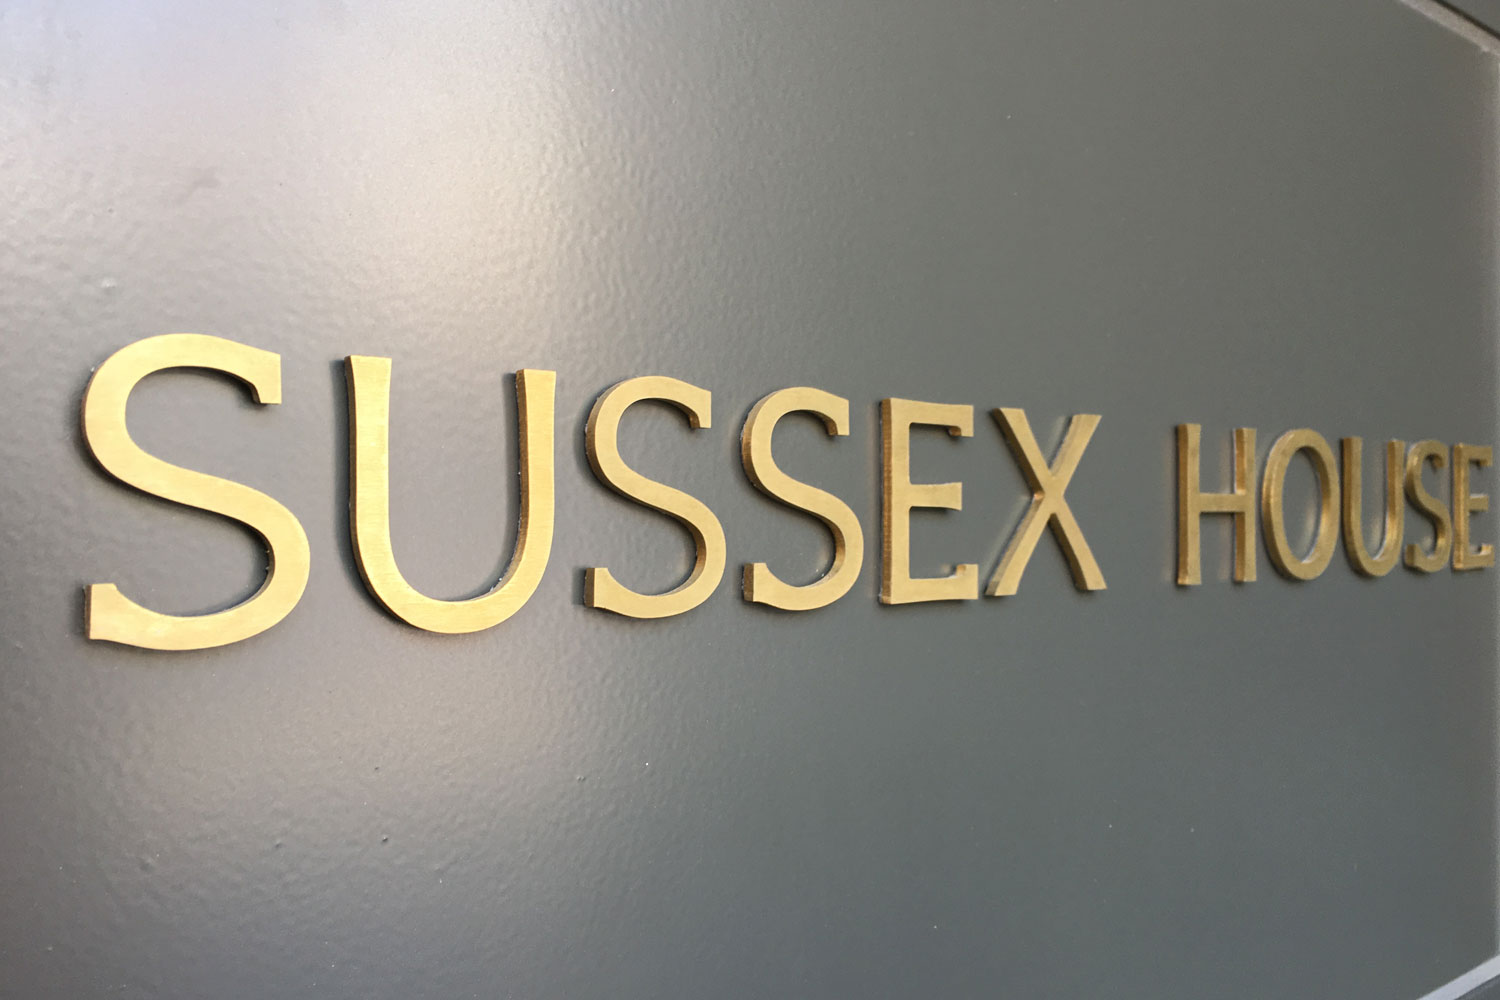 Sussex House sign